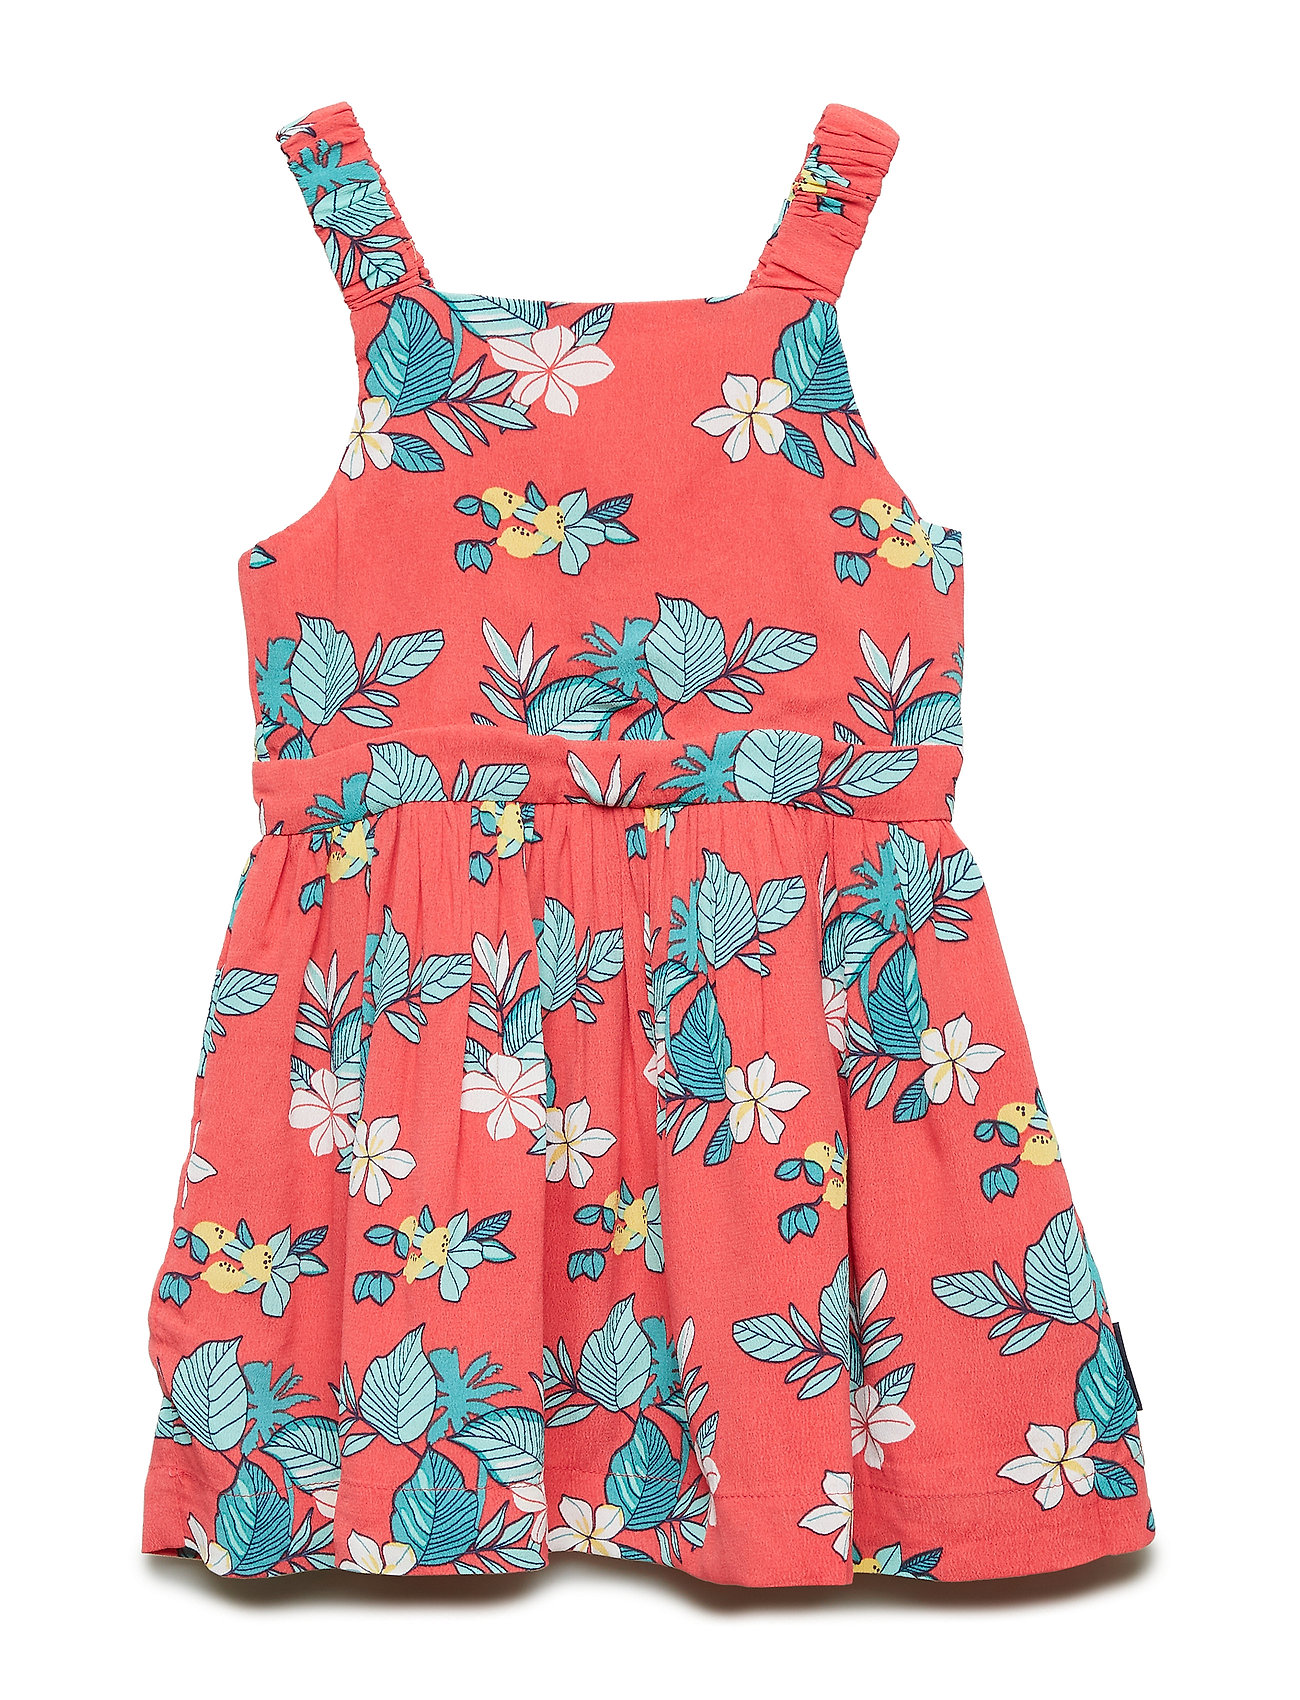 Polarn O. Pyret Dress Woven Preschool